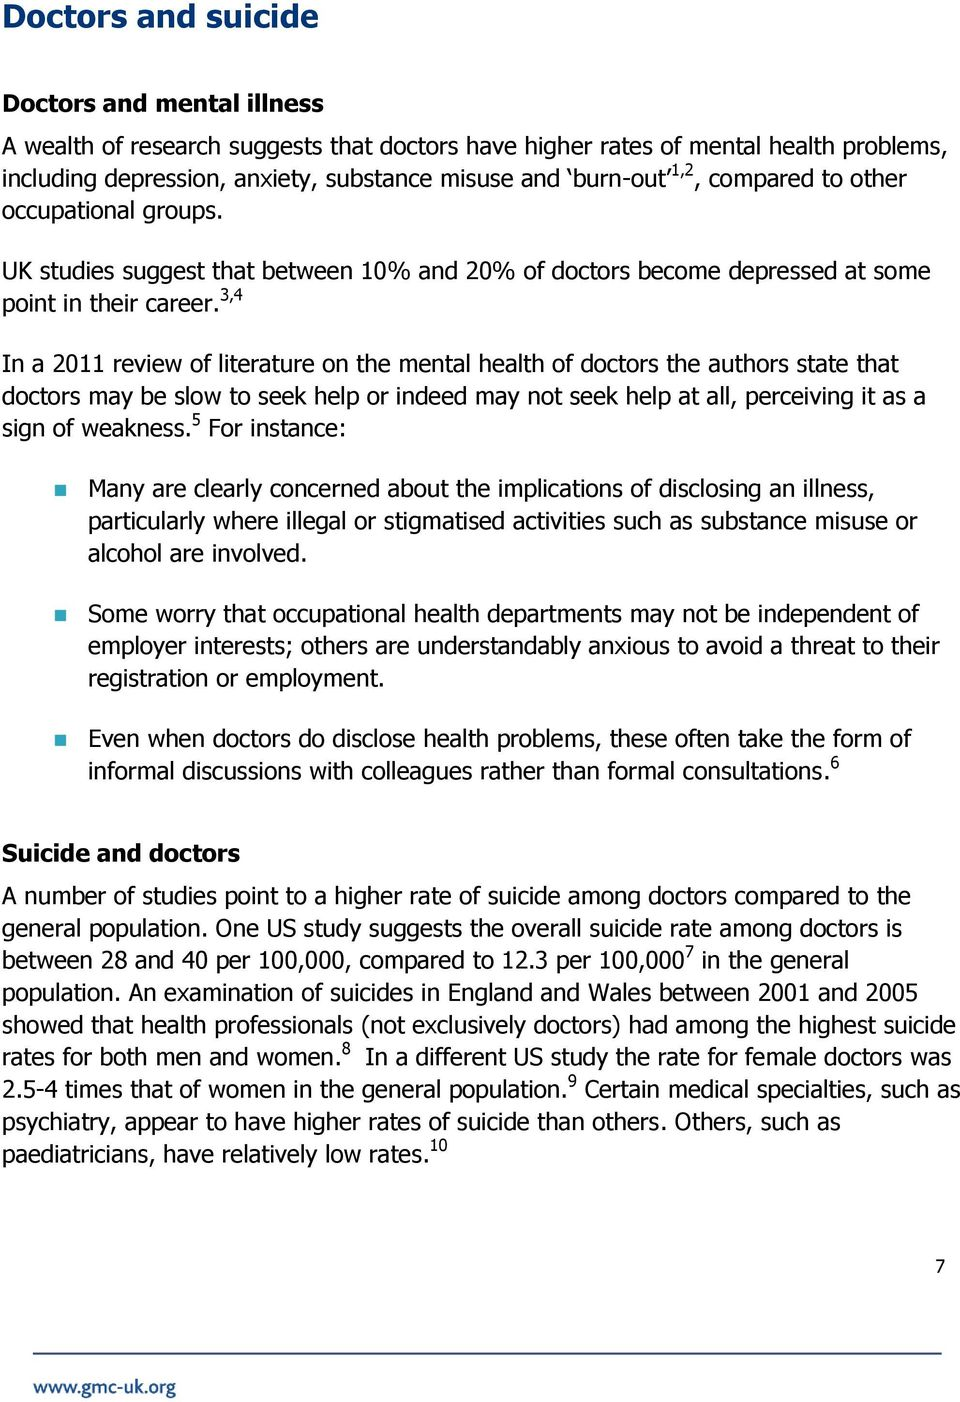 3,4 In a 2011 review of literature on the mental health of doctors the authors state that doctors may be slow to seek help or indeed may not seek help at all, perceiving it as a sign of weakness.